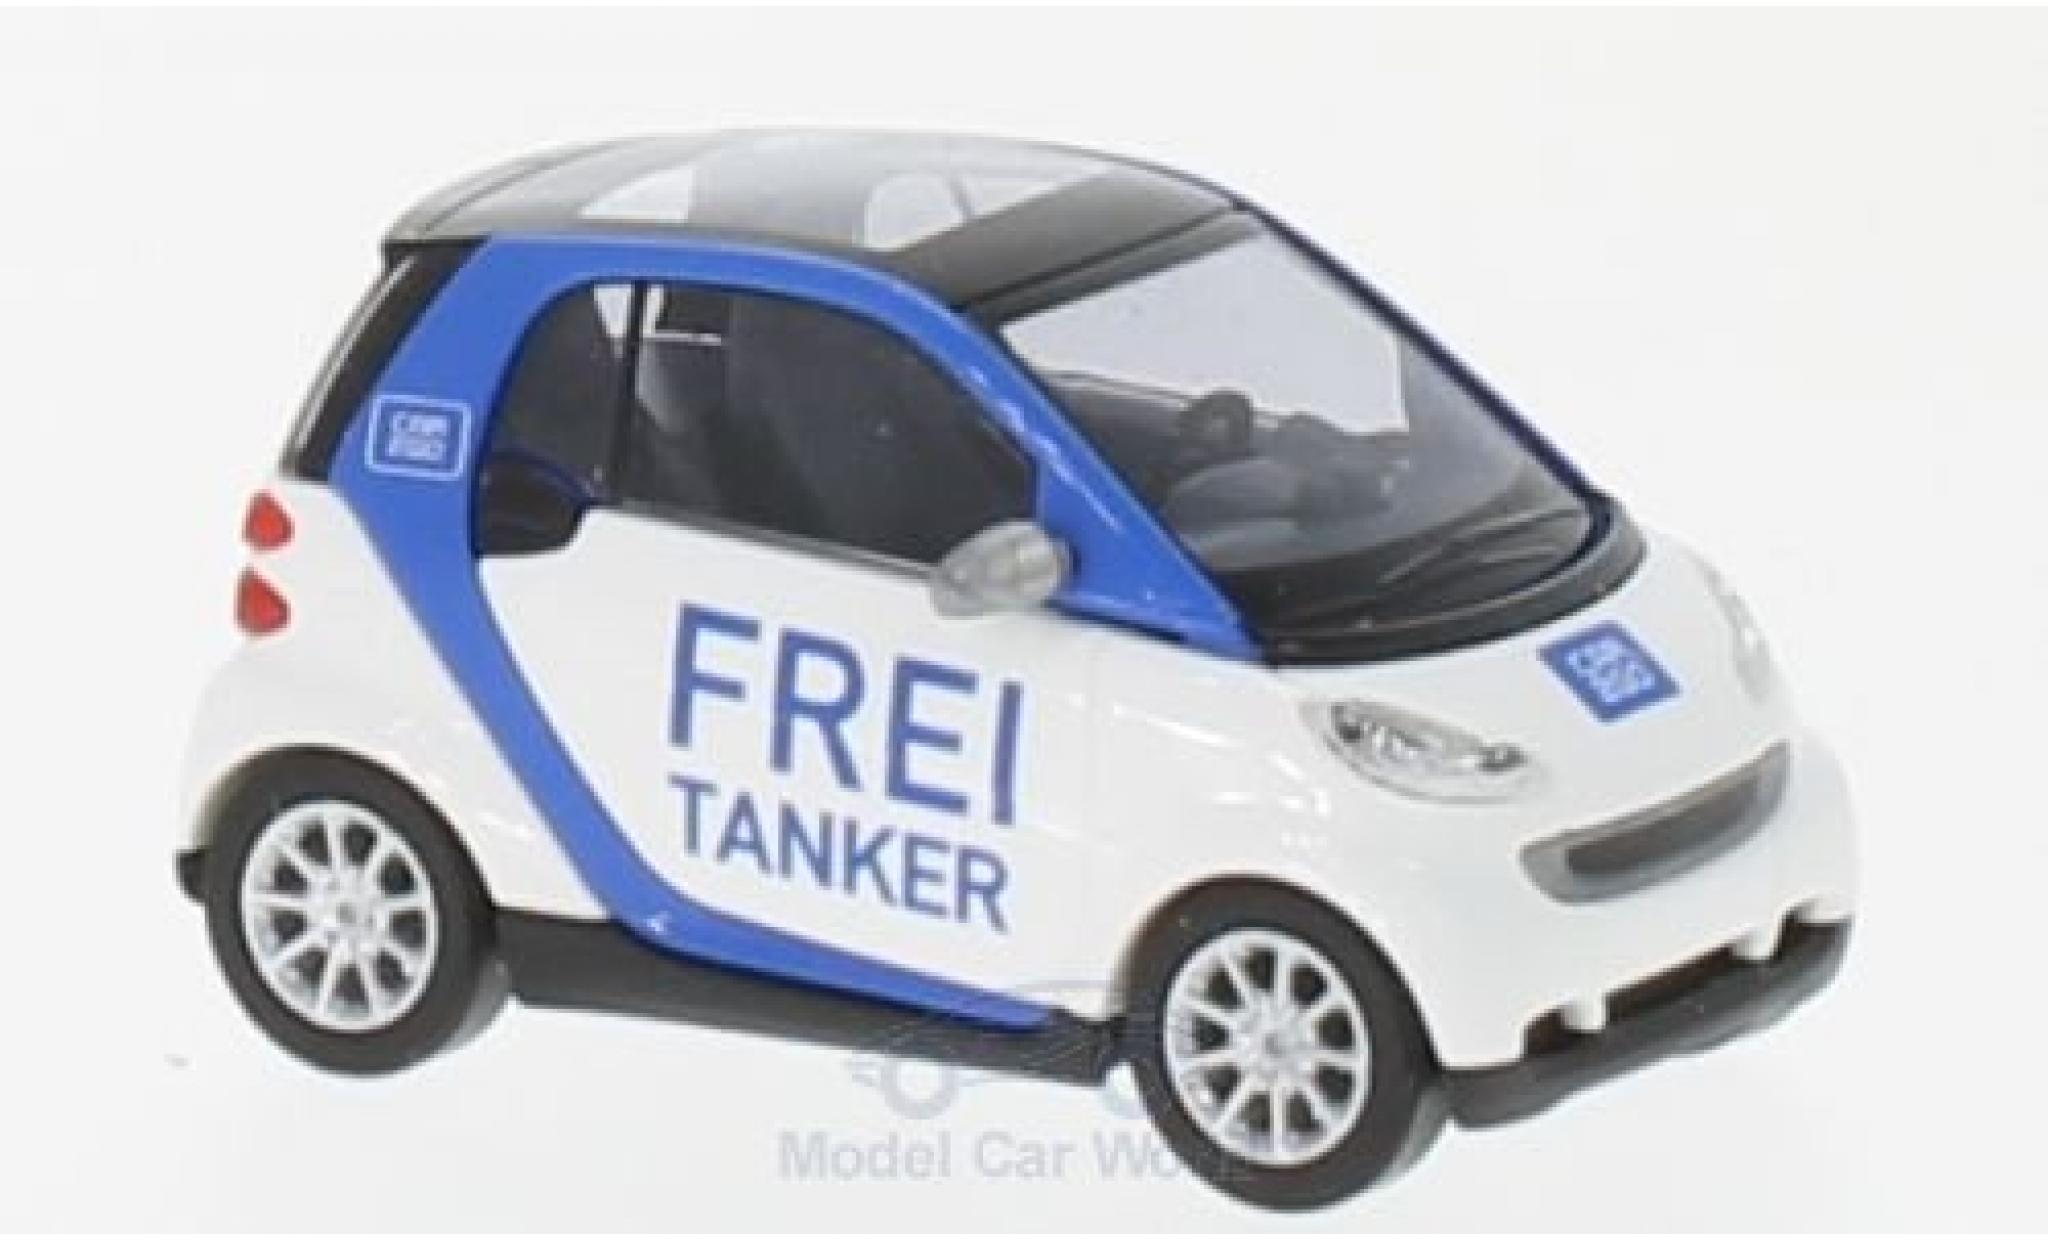 Smart ForTwo 1/87 Busch Fortwo Frei Tanker 2007 Car2go